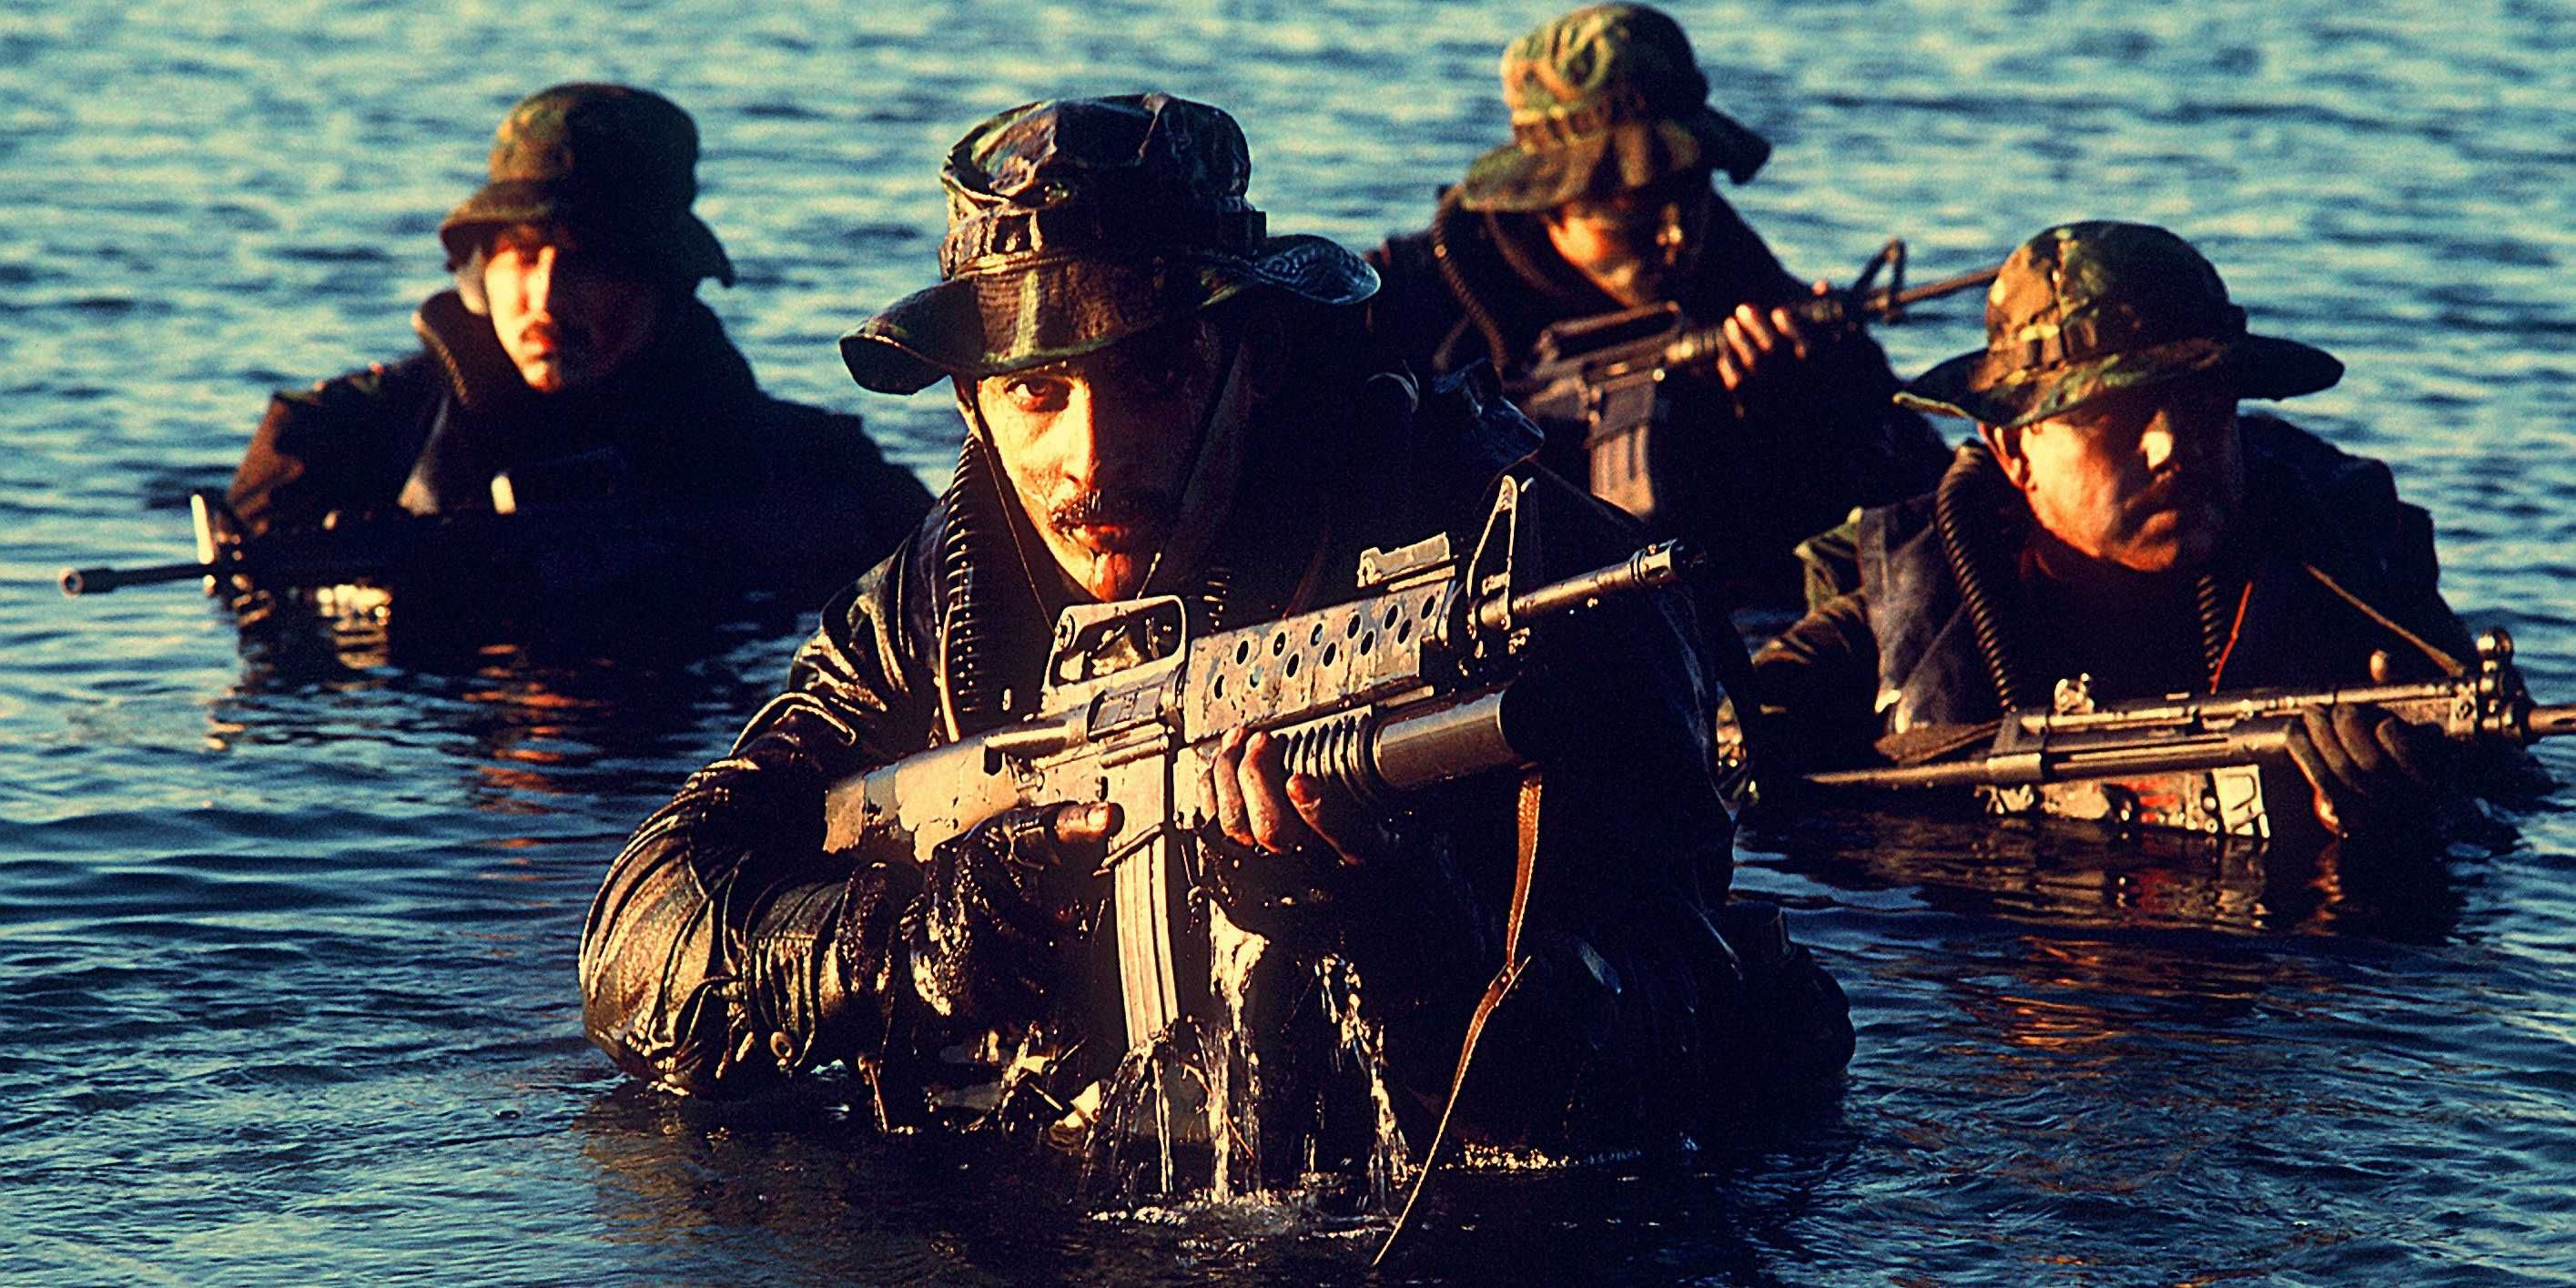 Navy SEAL US Special Ops Are Starting To Look A Lot Less Special